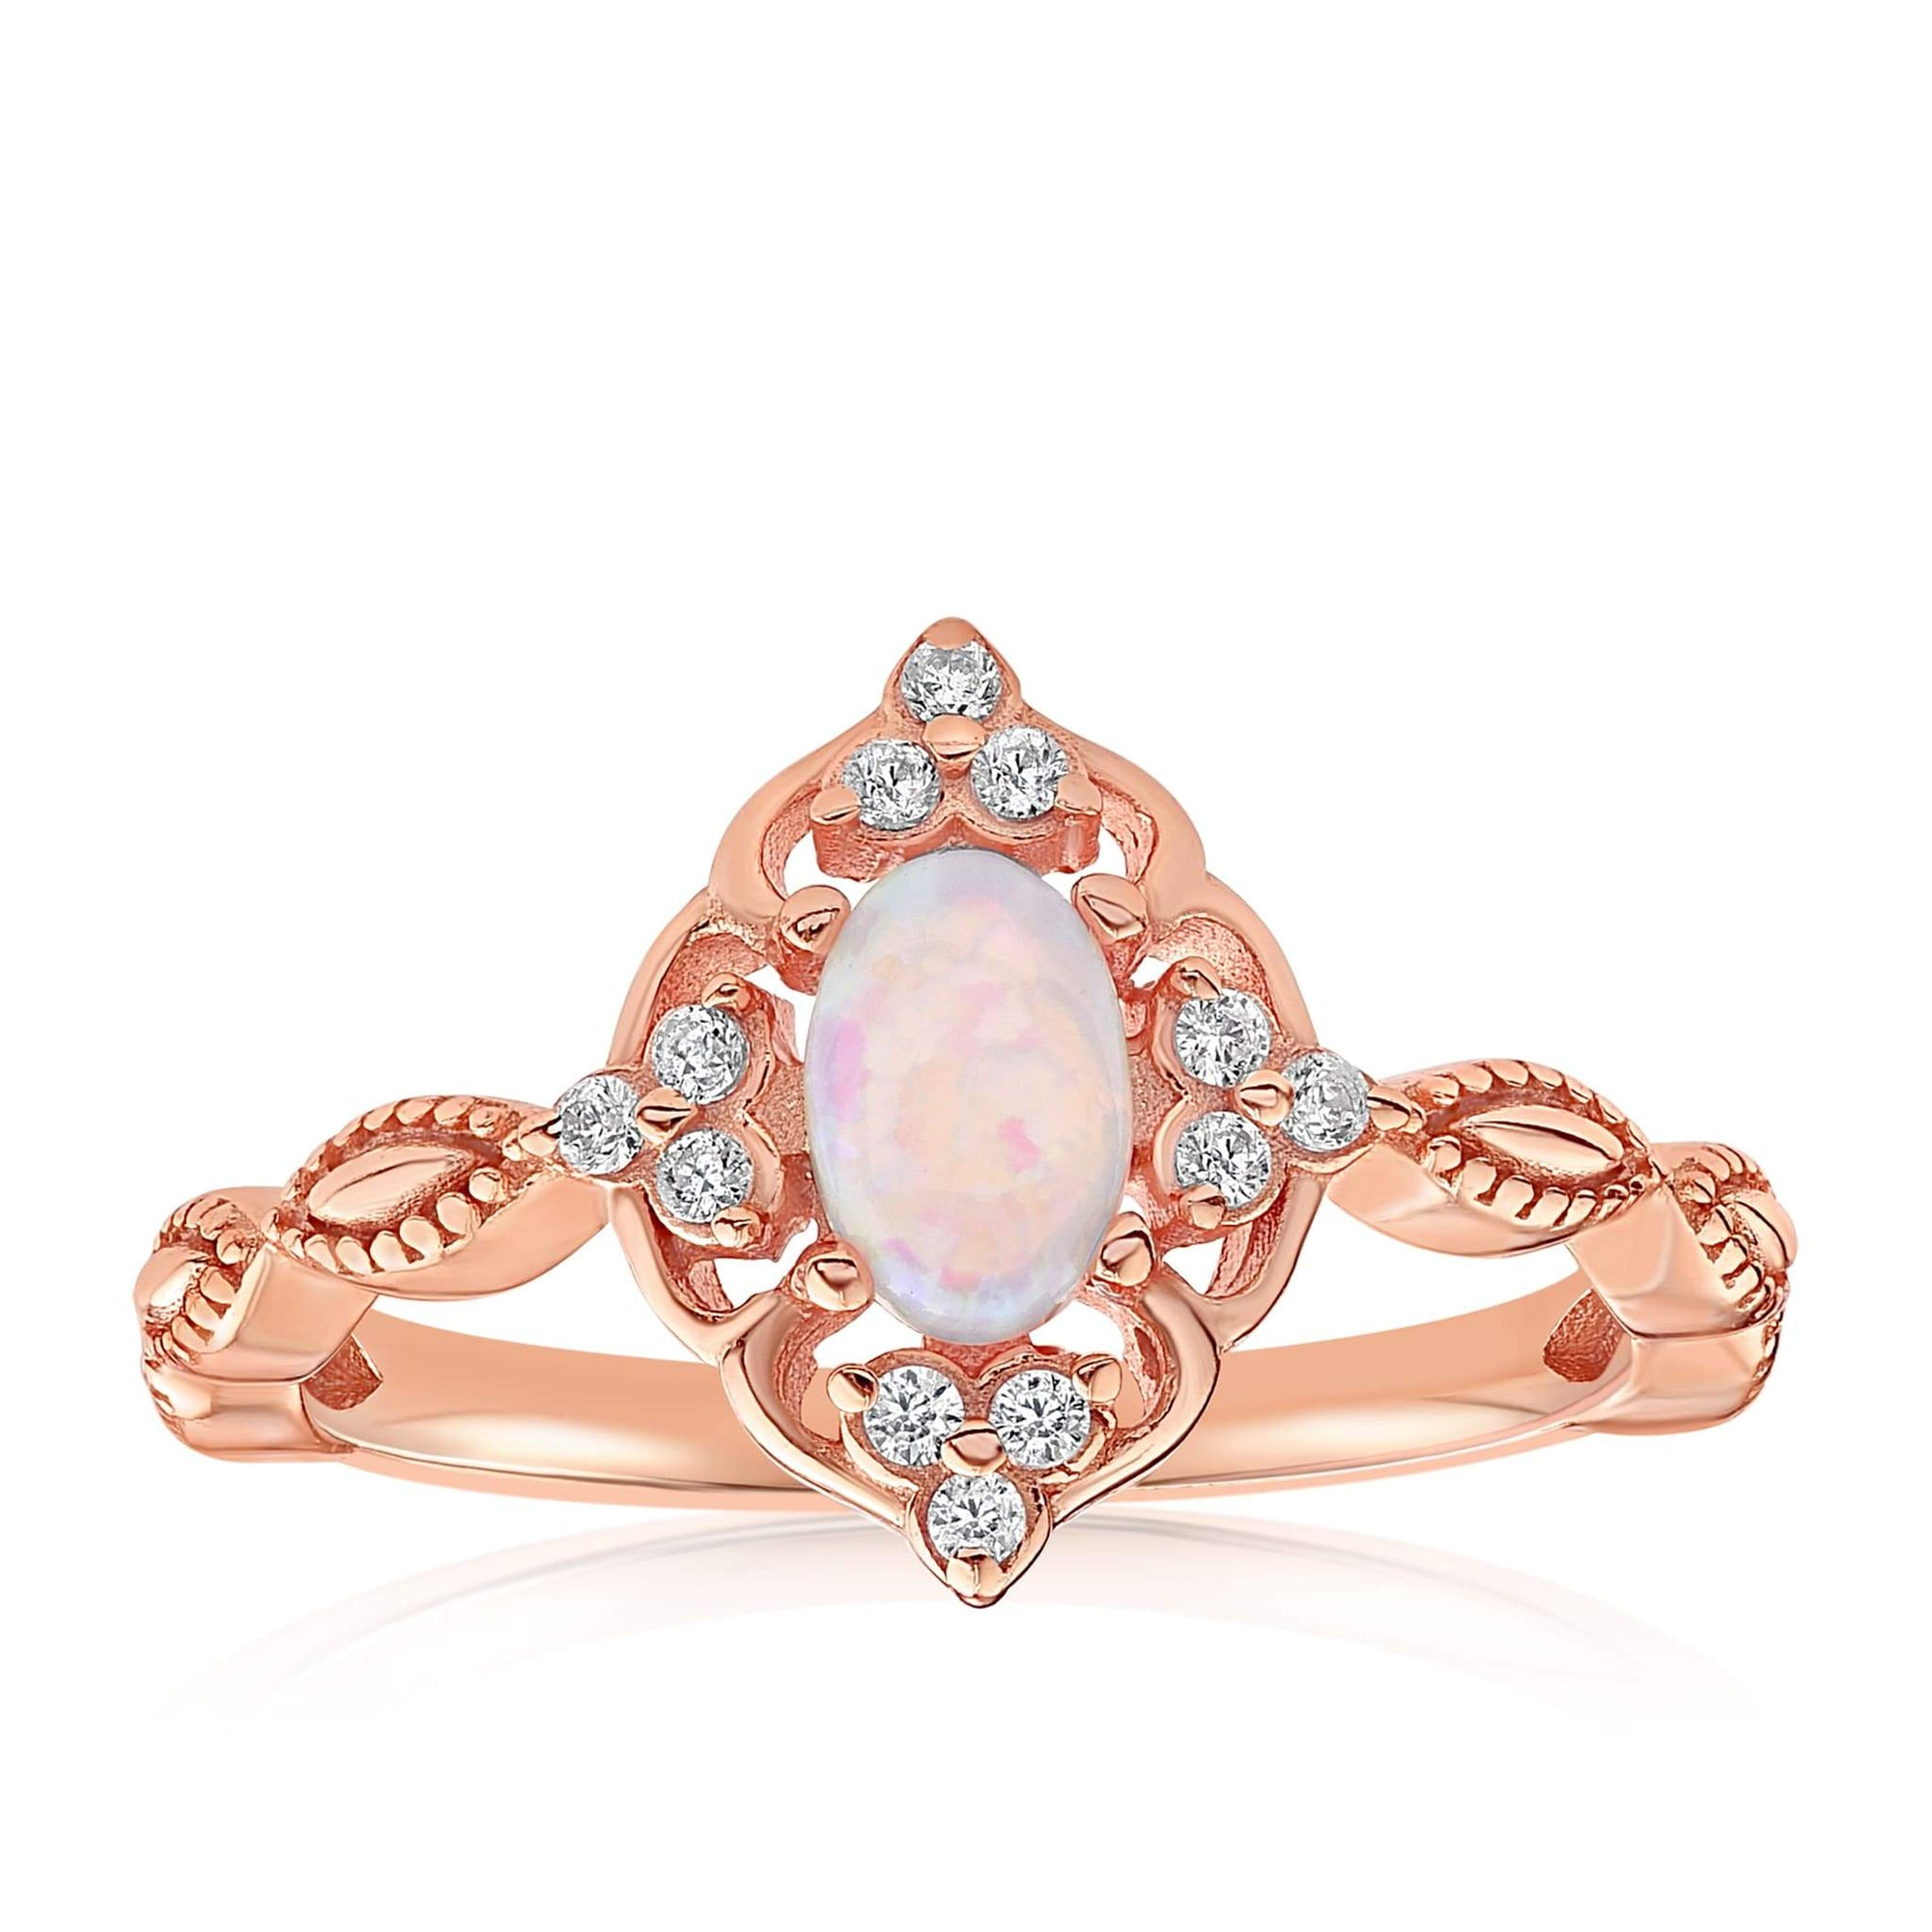 Blue Opal Carved Ring - Front View Facing Up - 18K Rose Gold Vermeil